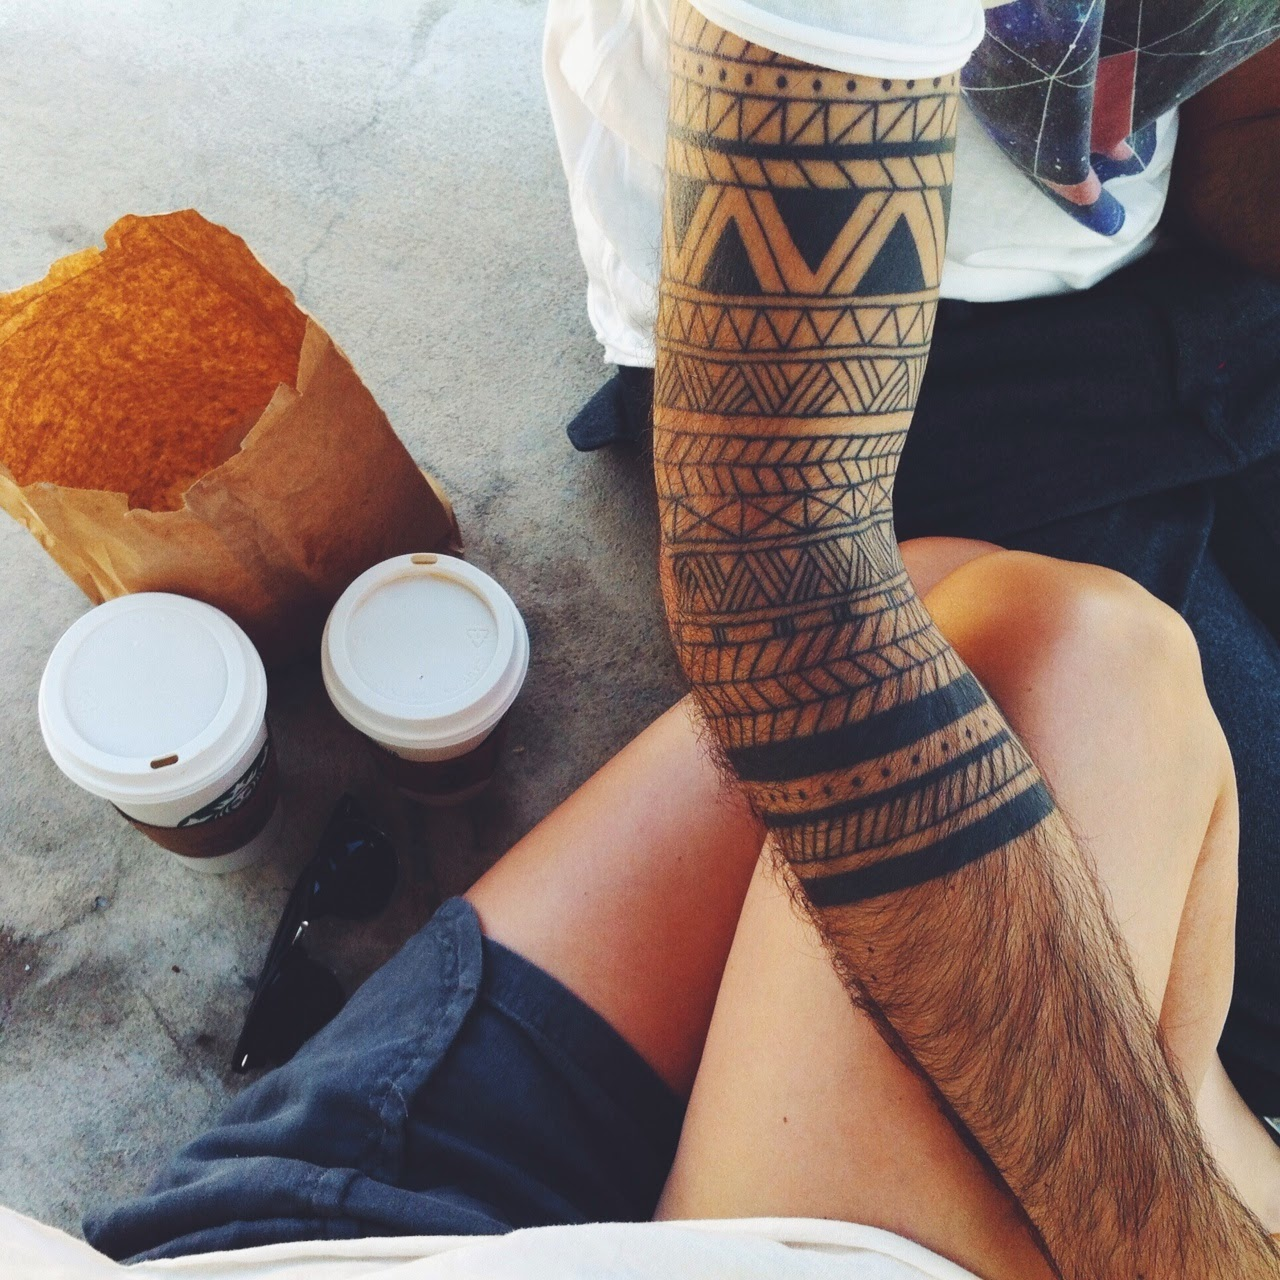 instagram tattoo, man sleeve tattoo, instagram blogging tips, star backs coffee cups for couple